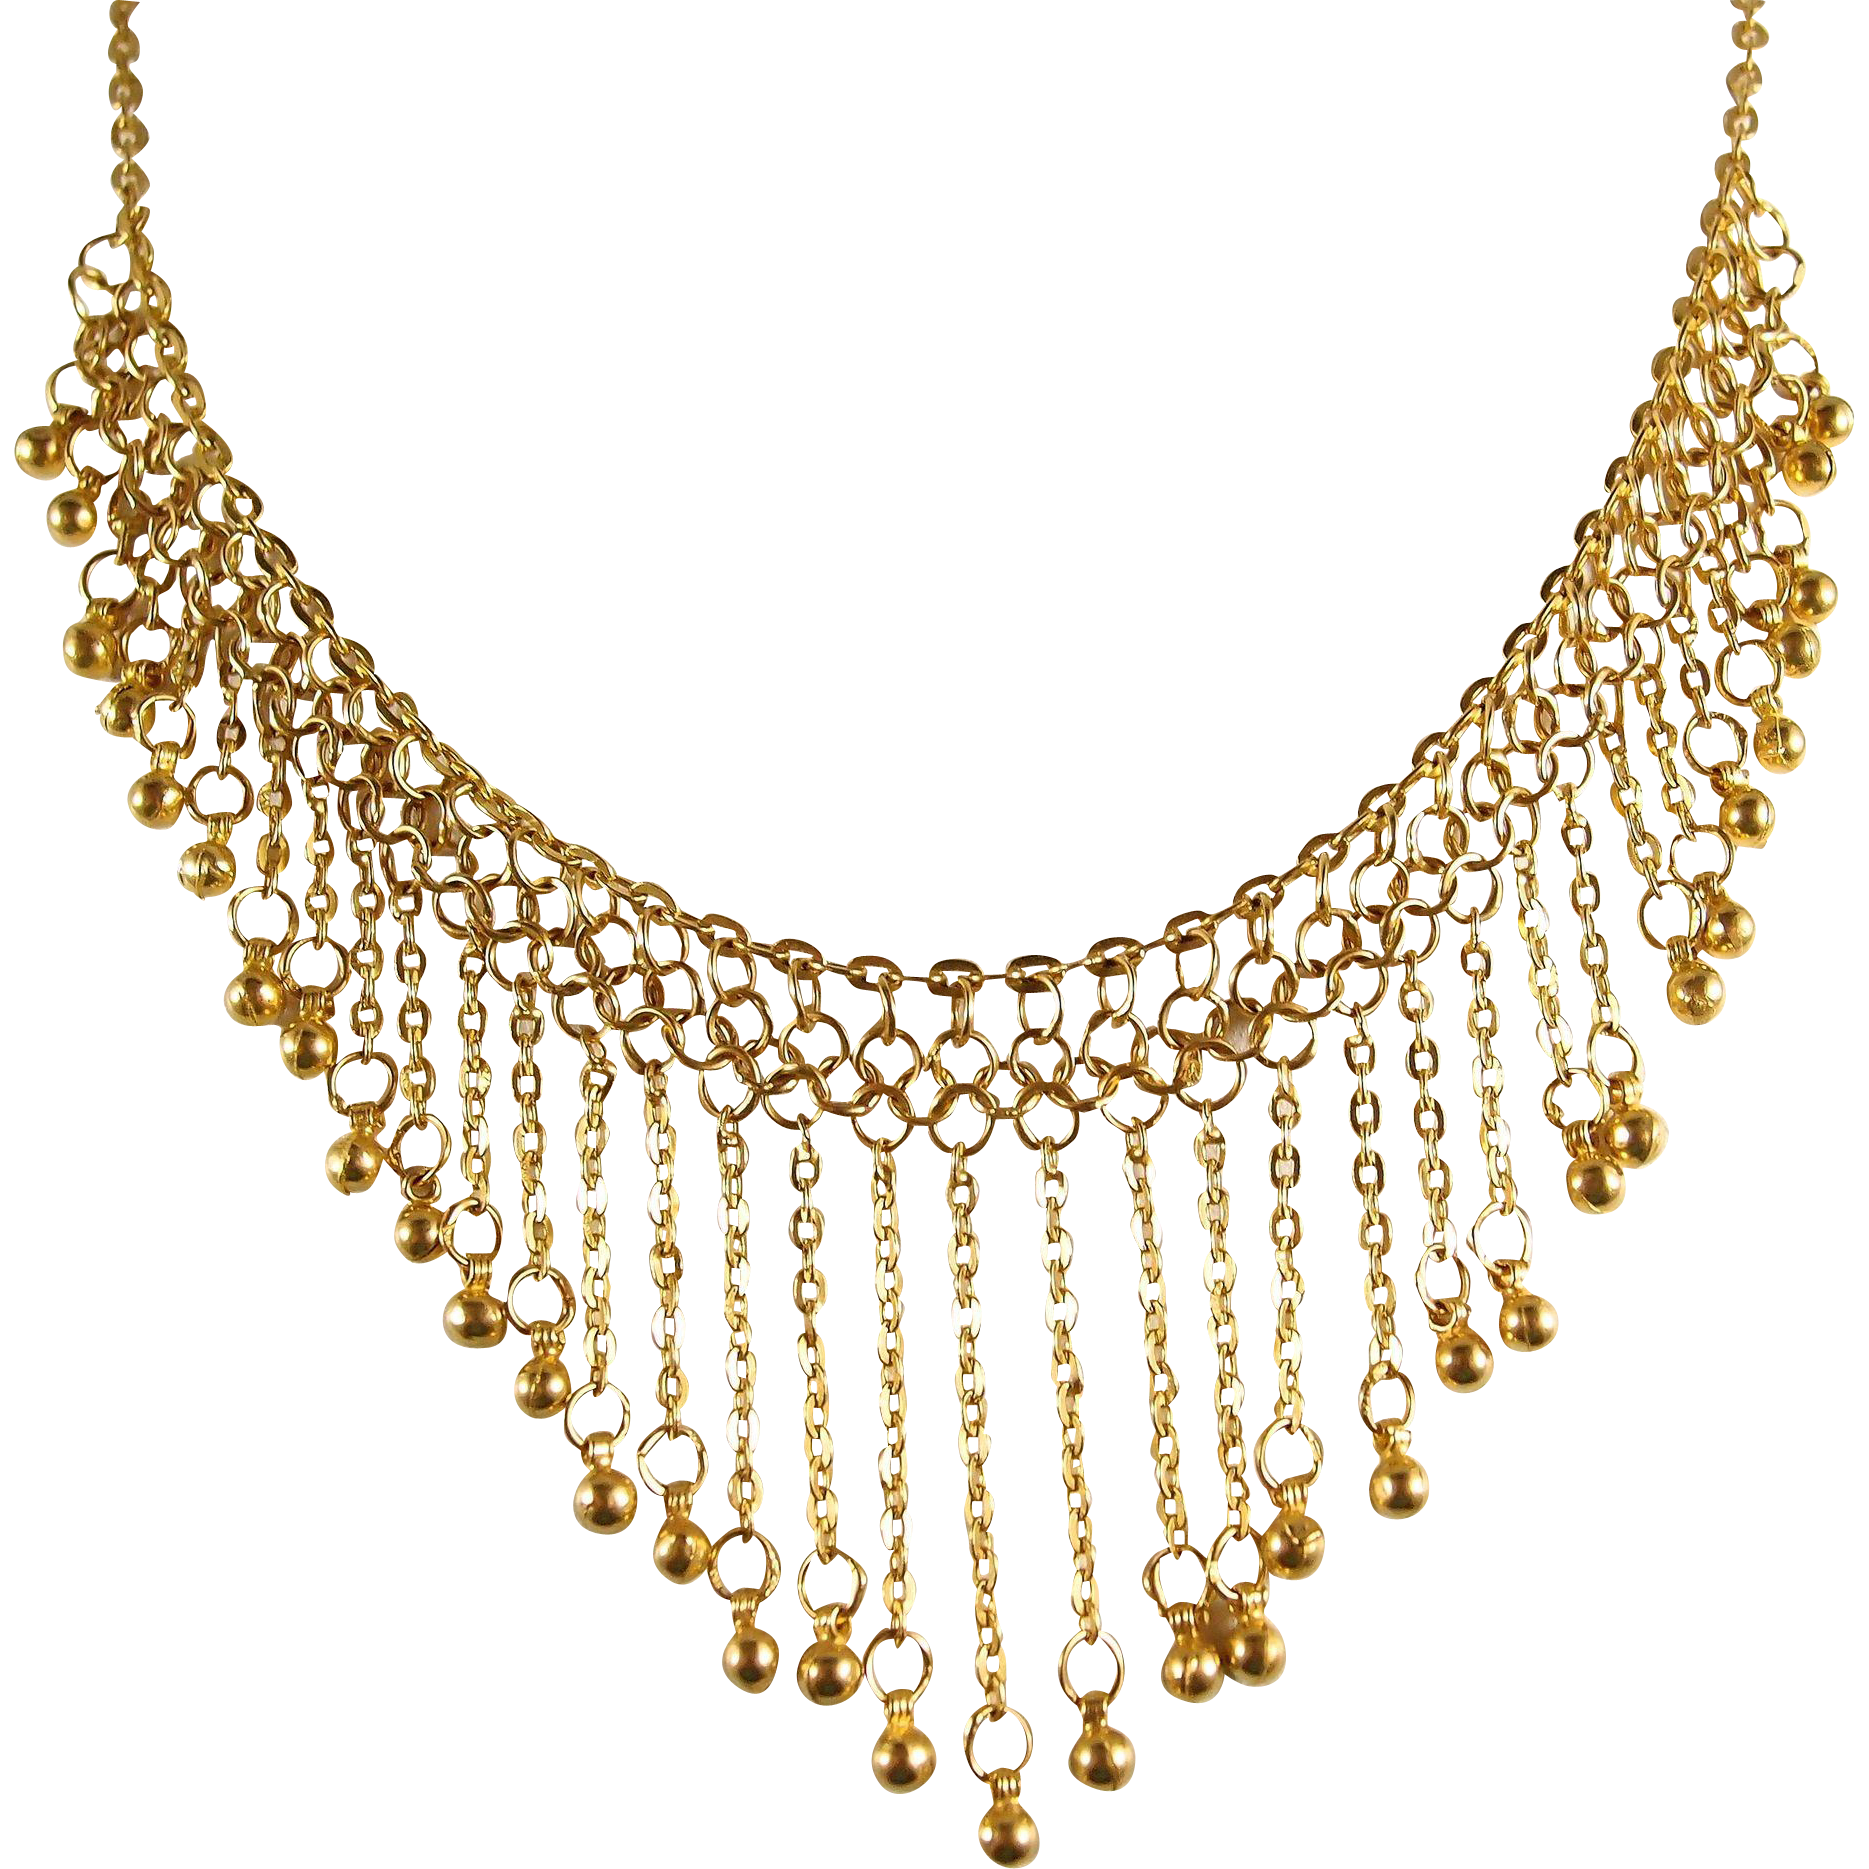 Necklace clipart tier. Gold bib nobby design